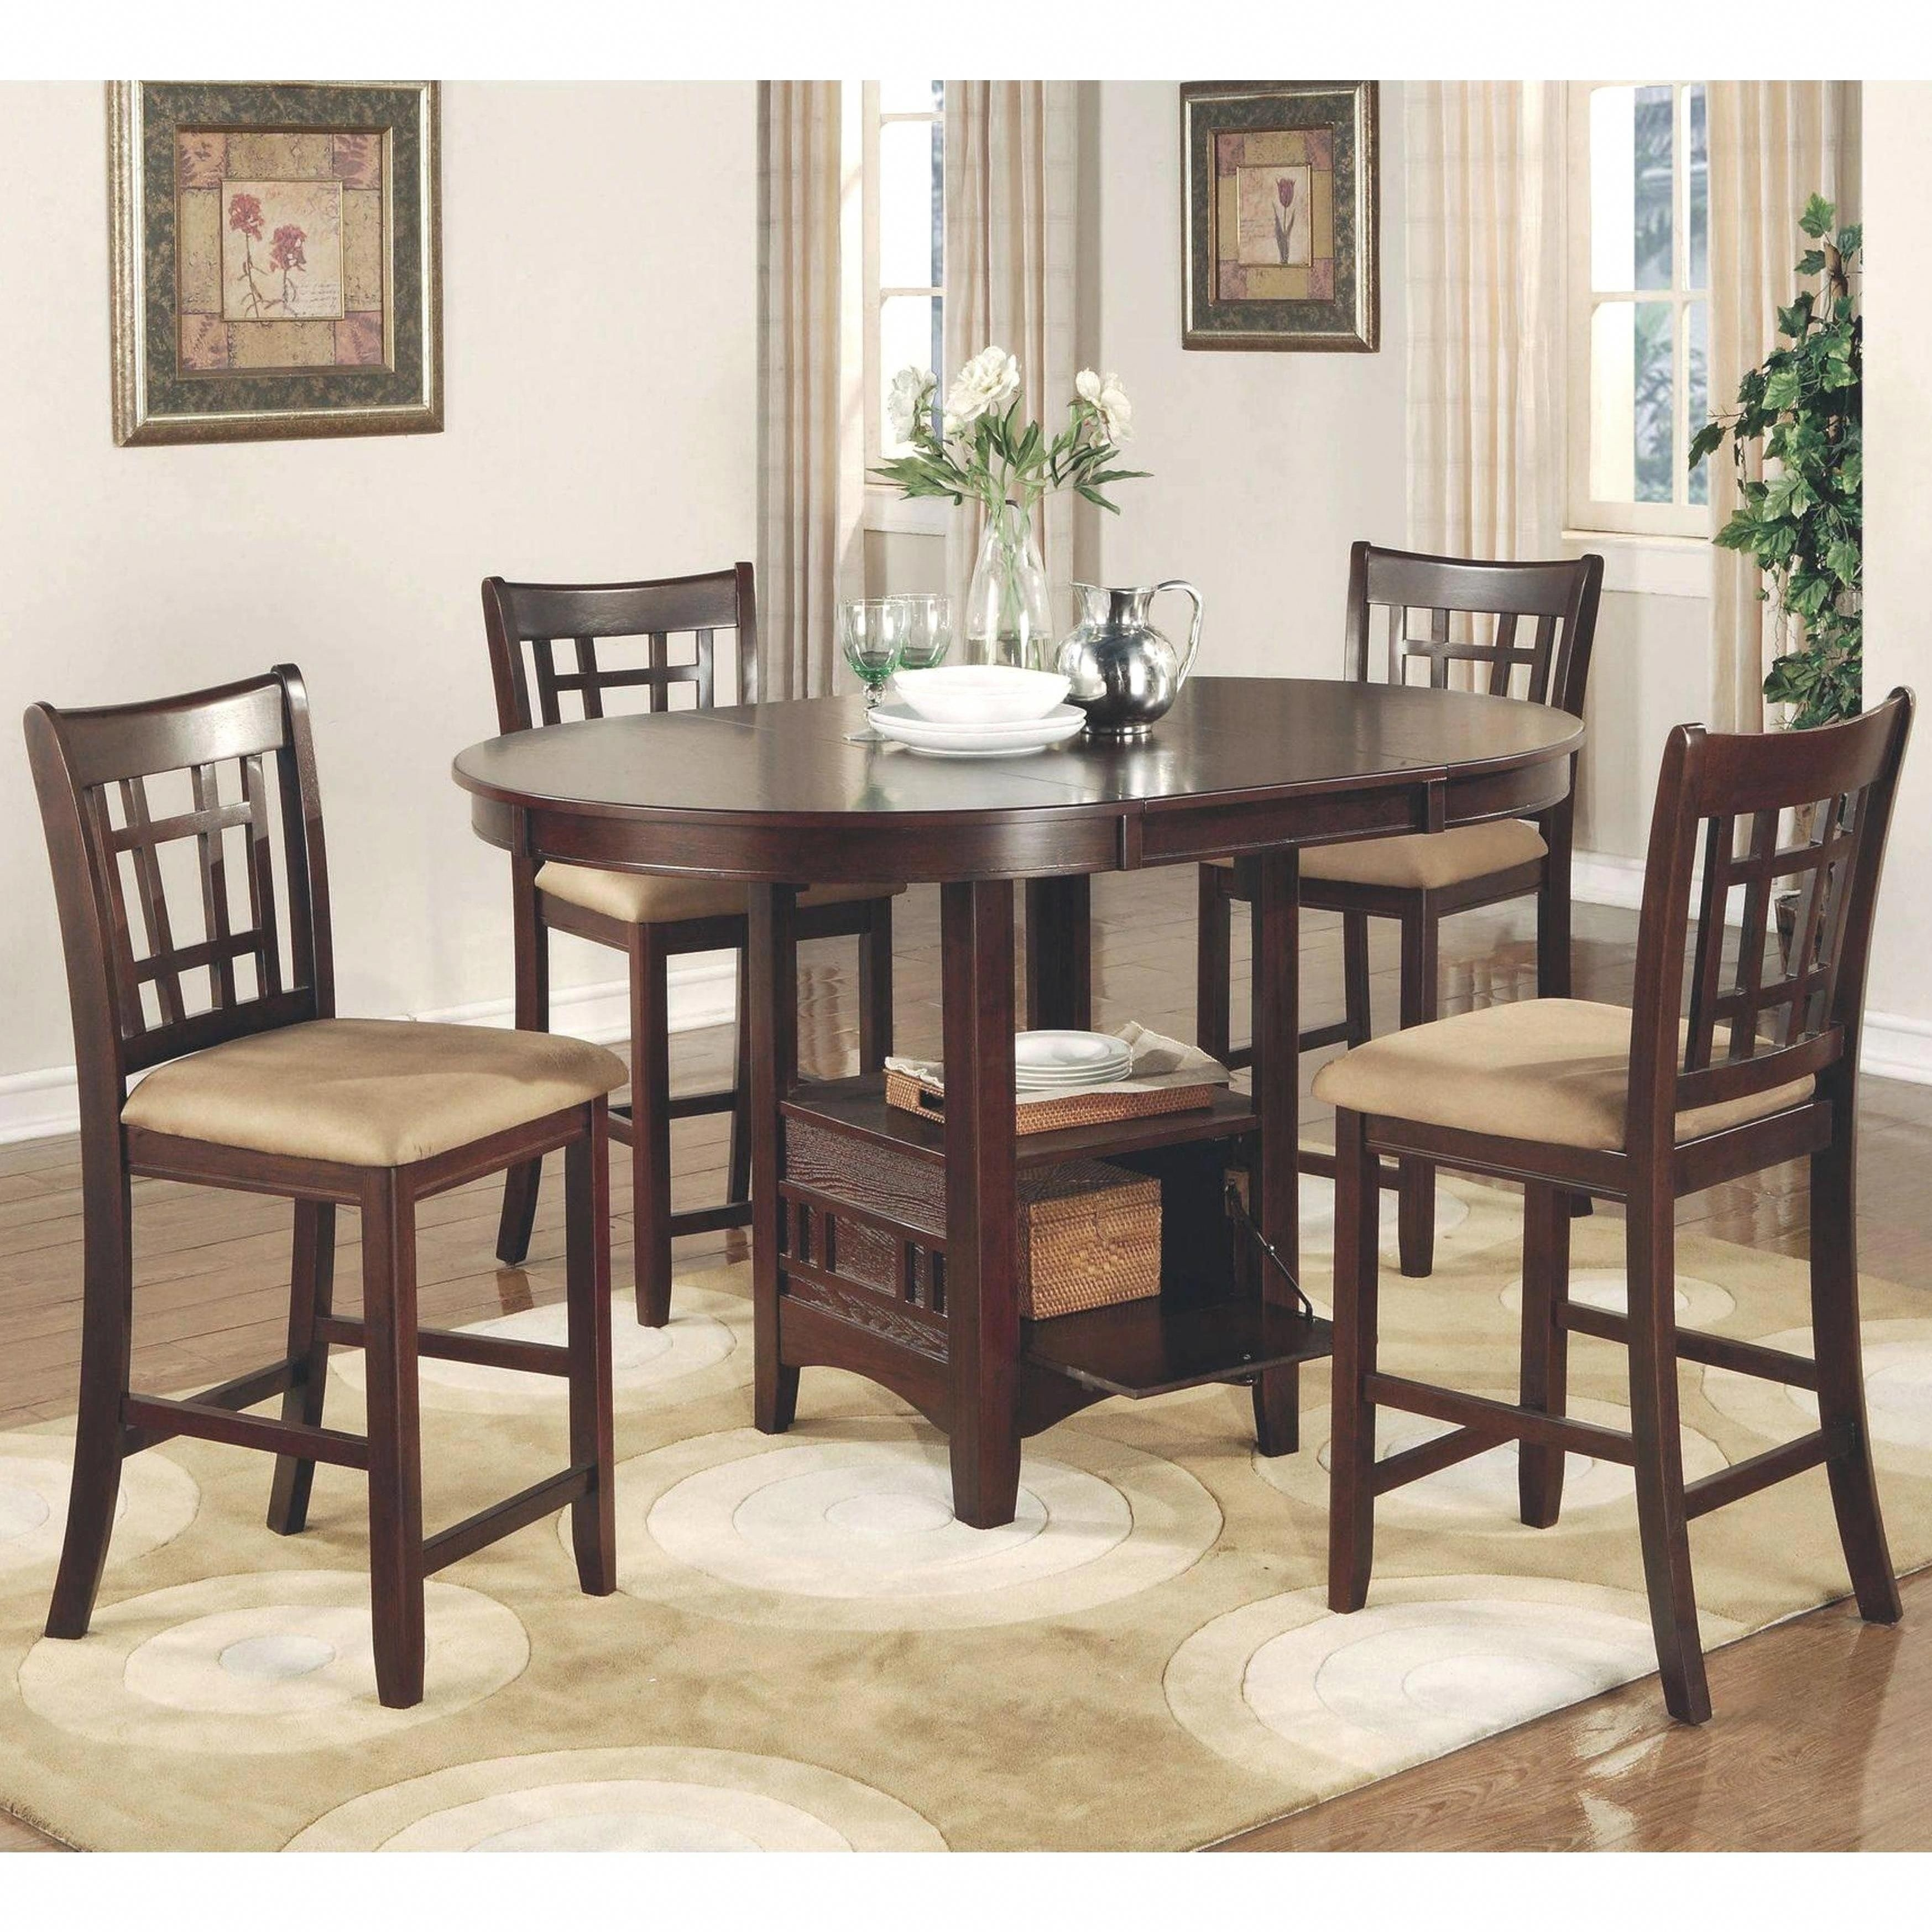 Azalea Warm Brown Counter Height Dining Set (1 Table – 6 Stools Throughout Most Recently Released Market 7 Piece Dining Sets With Side Chairs (Image 1 of 20)